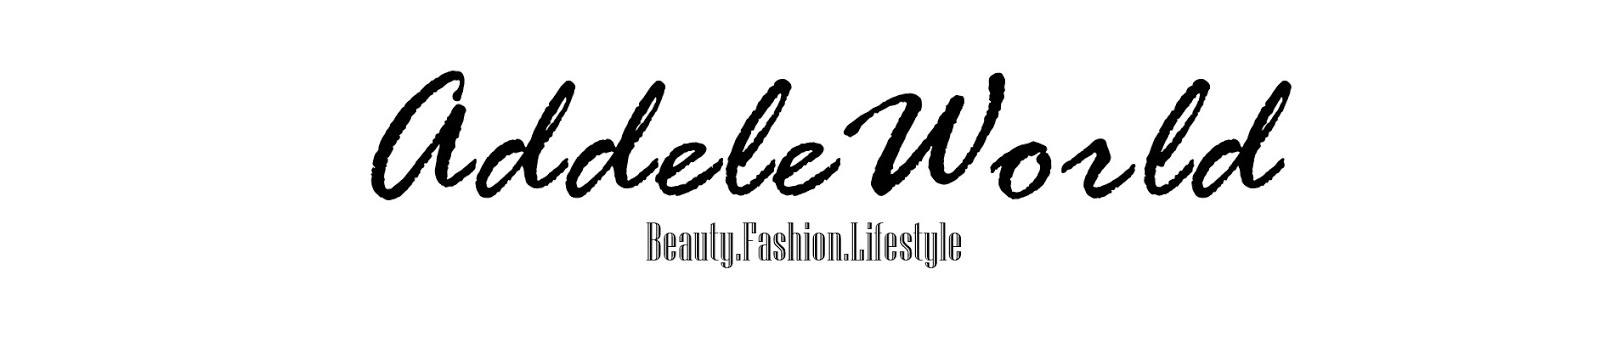 * A D D E L E W O R L D - BEAUTY, FASHION, LIFESTYLE *